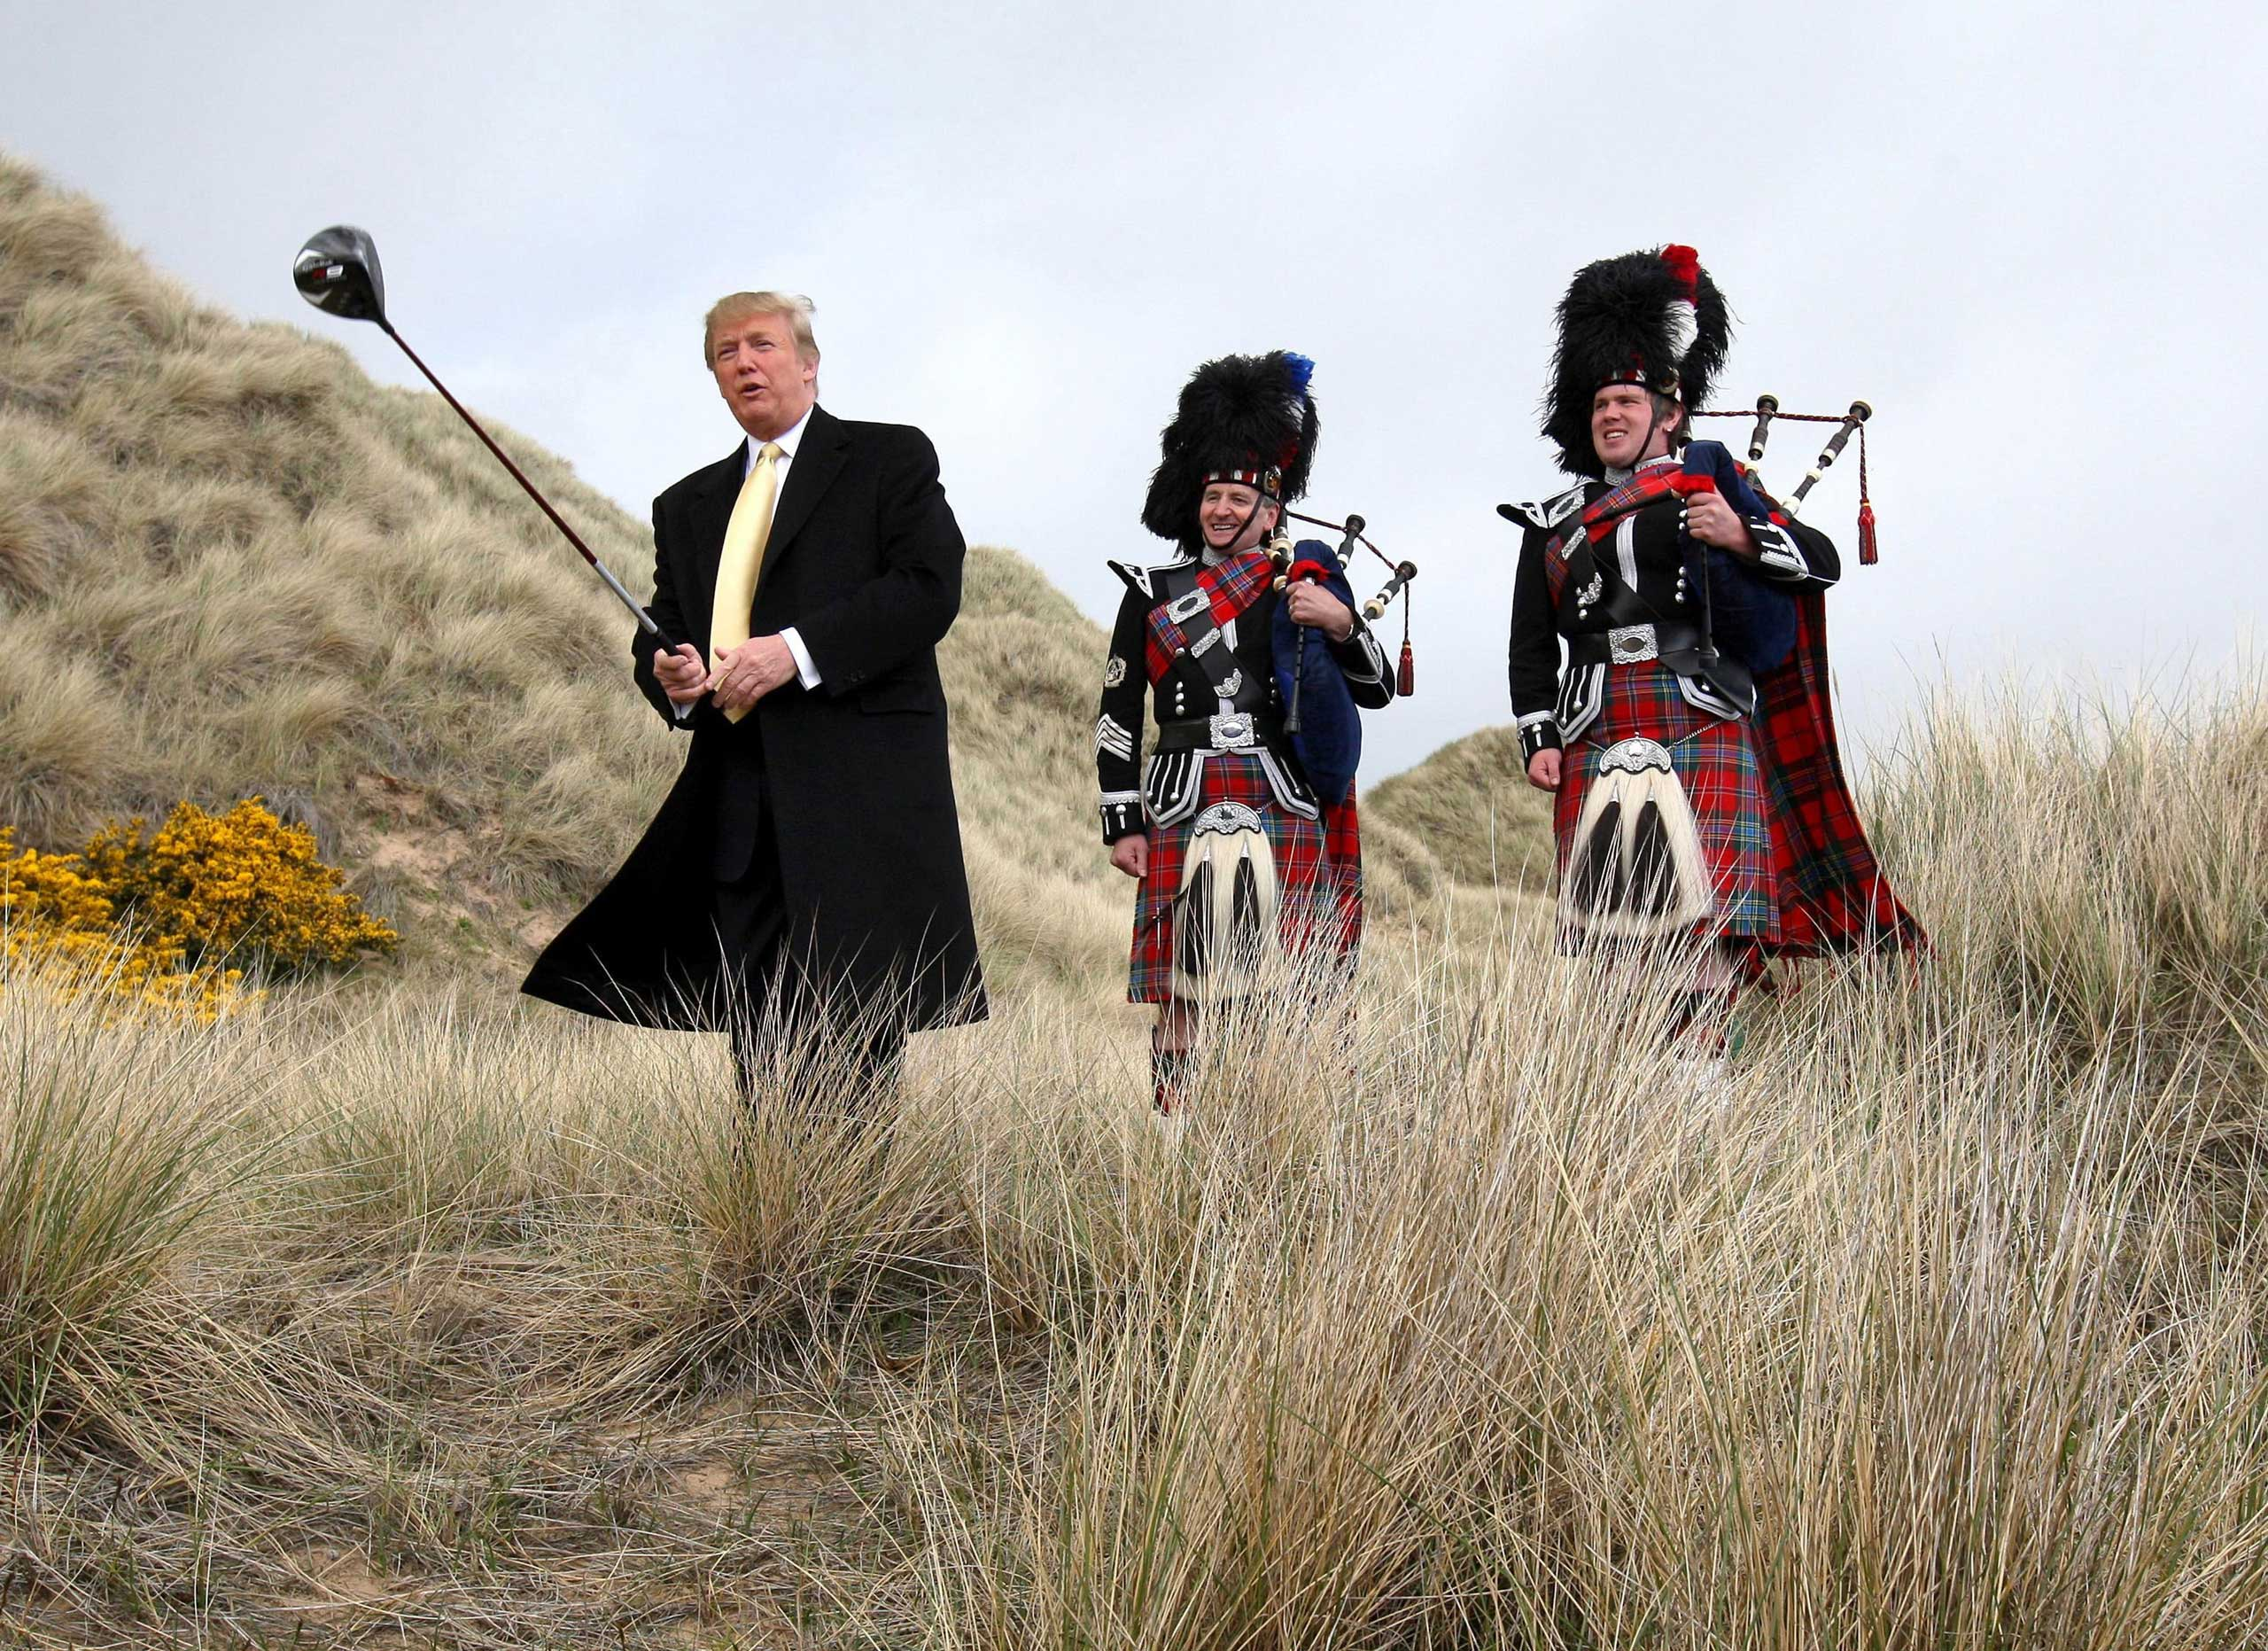 Donald Trump swinging a golf club on the Menie Estate in northeast Scotland in 2010.